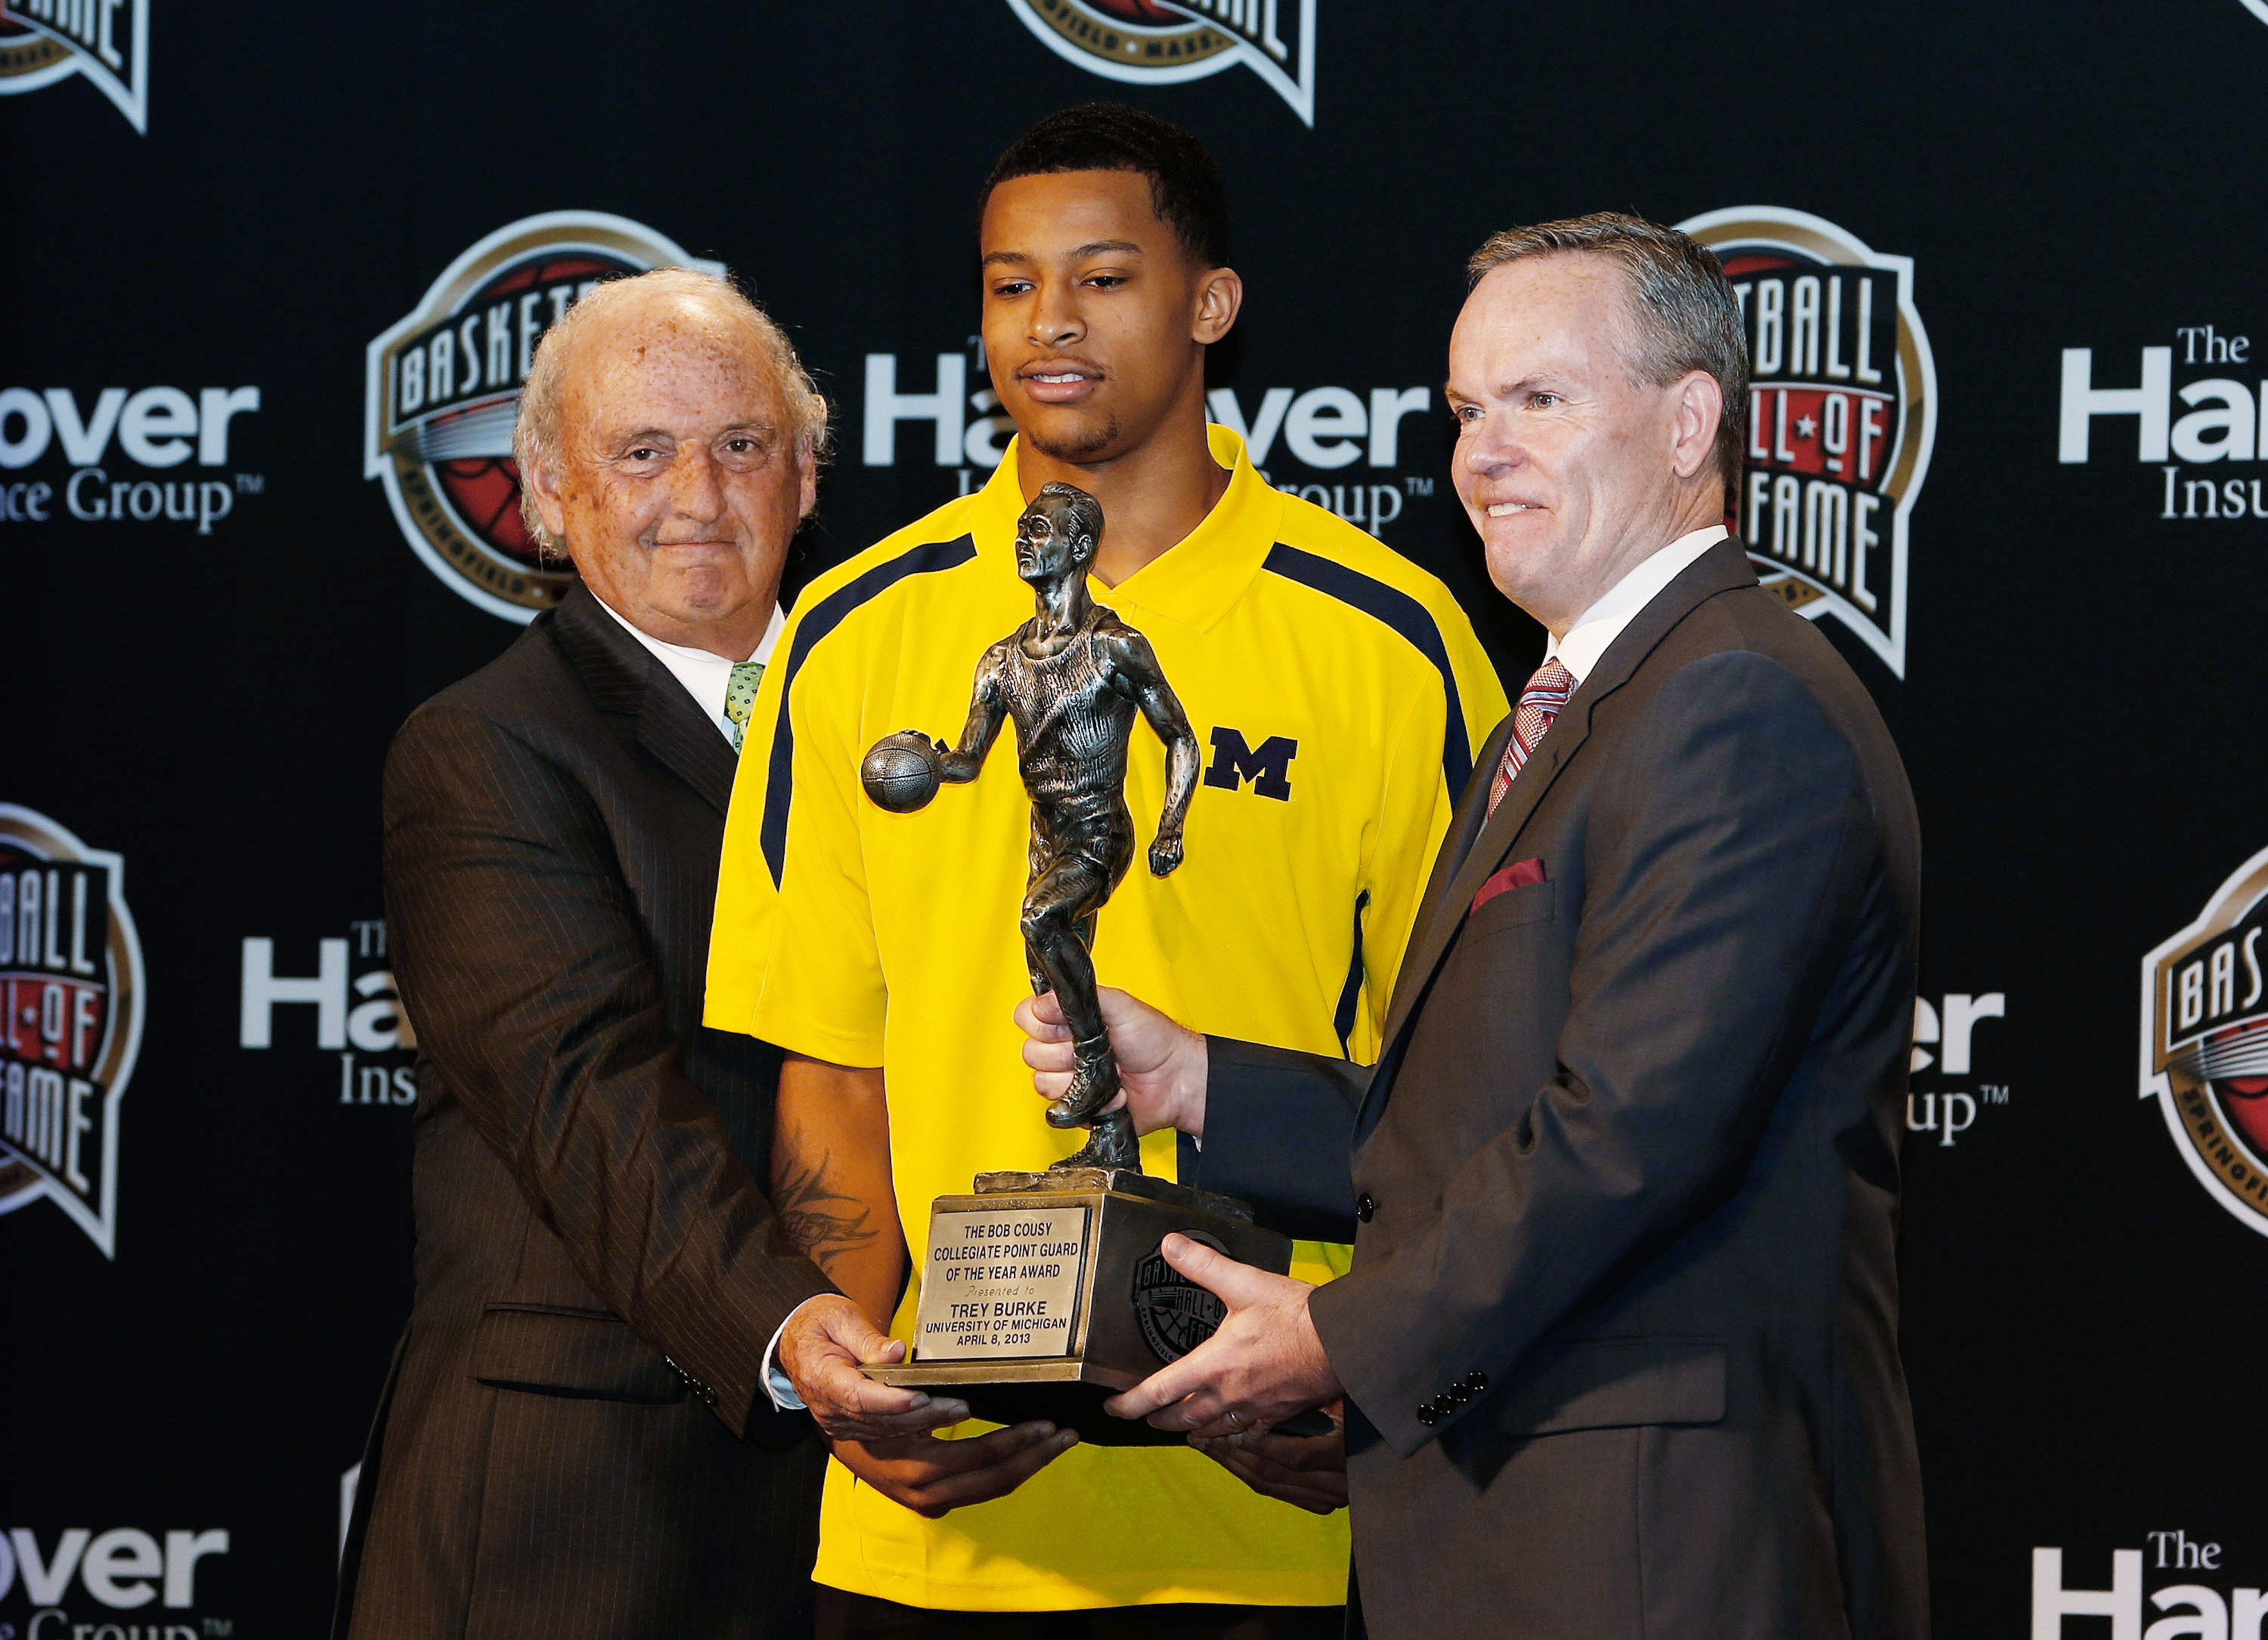 Michigan Guard Trey Burke is bringing home all the individual hardware.  But he'd rather win tonight's game vs. Louisville.  Our Louisville pic is fronting the StoryStream!